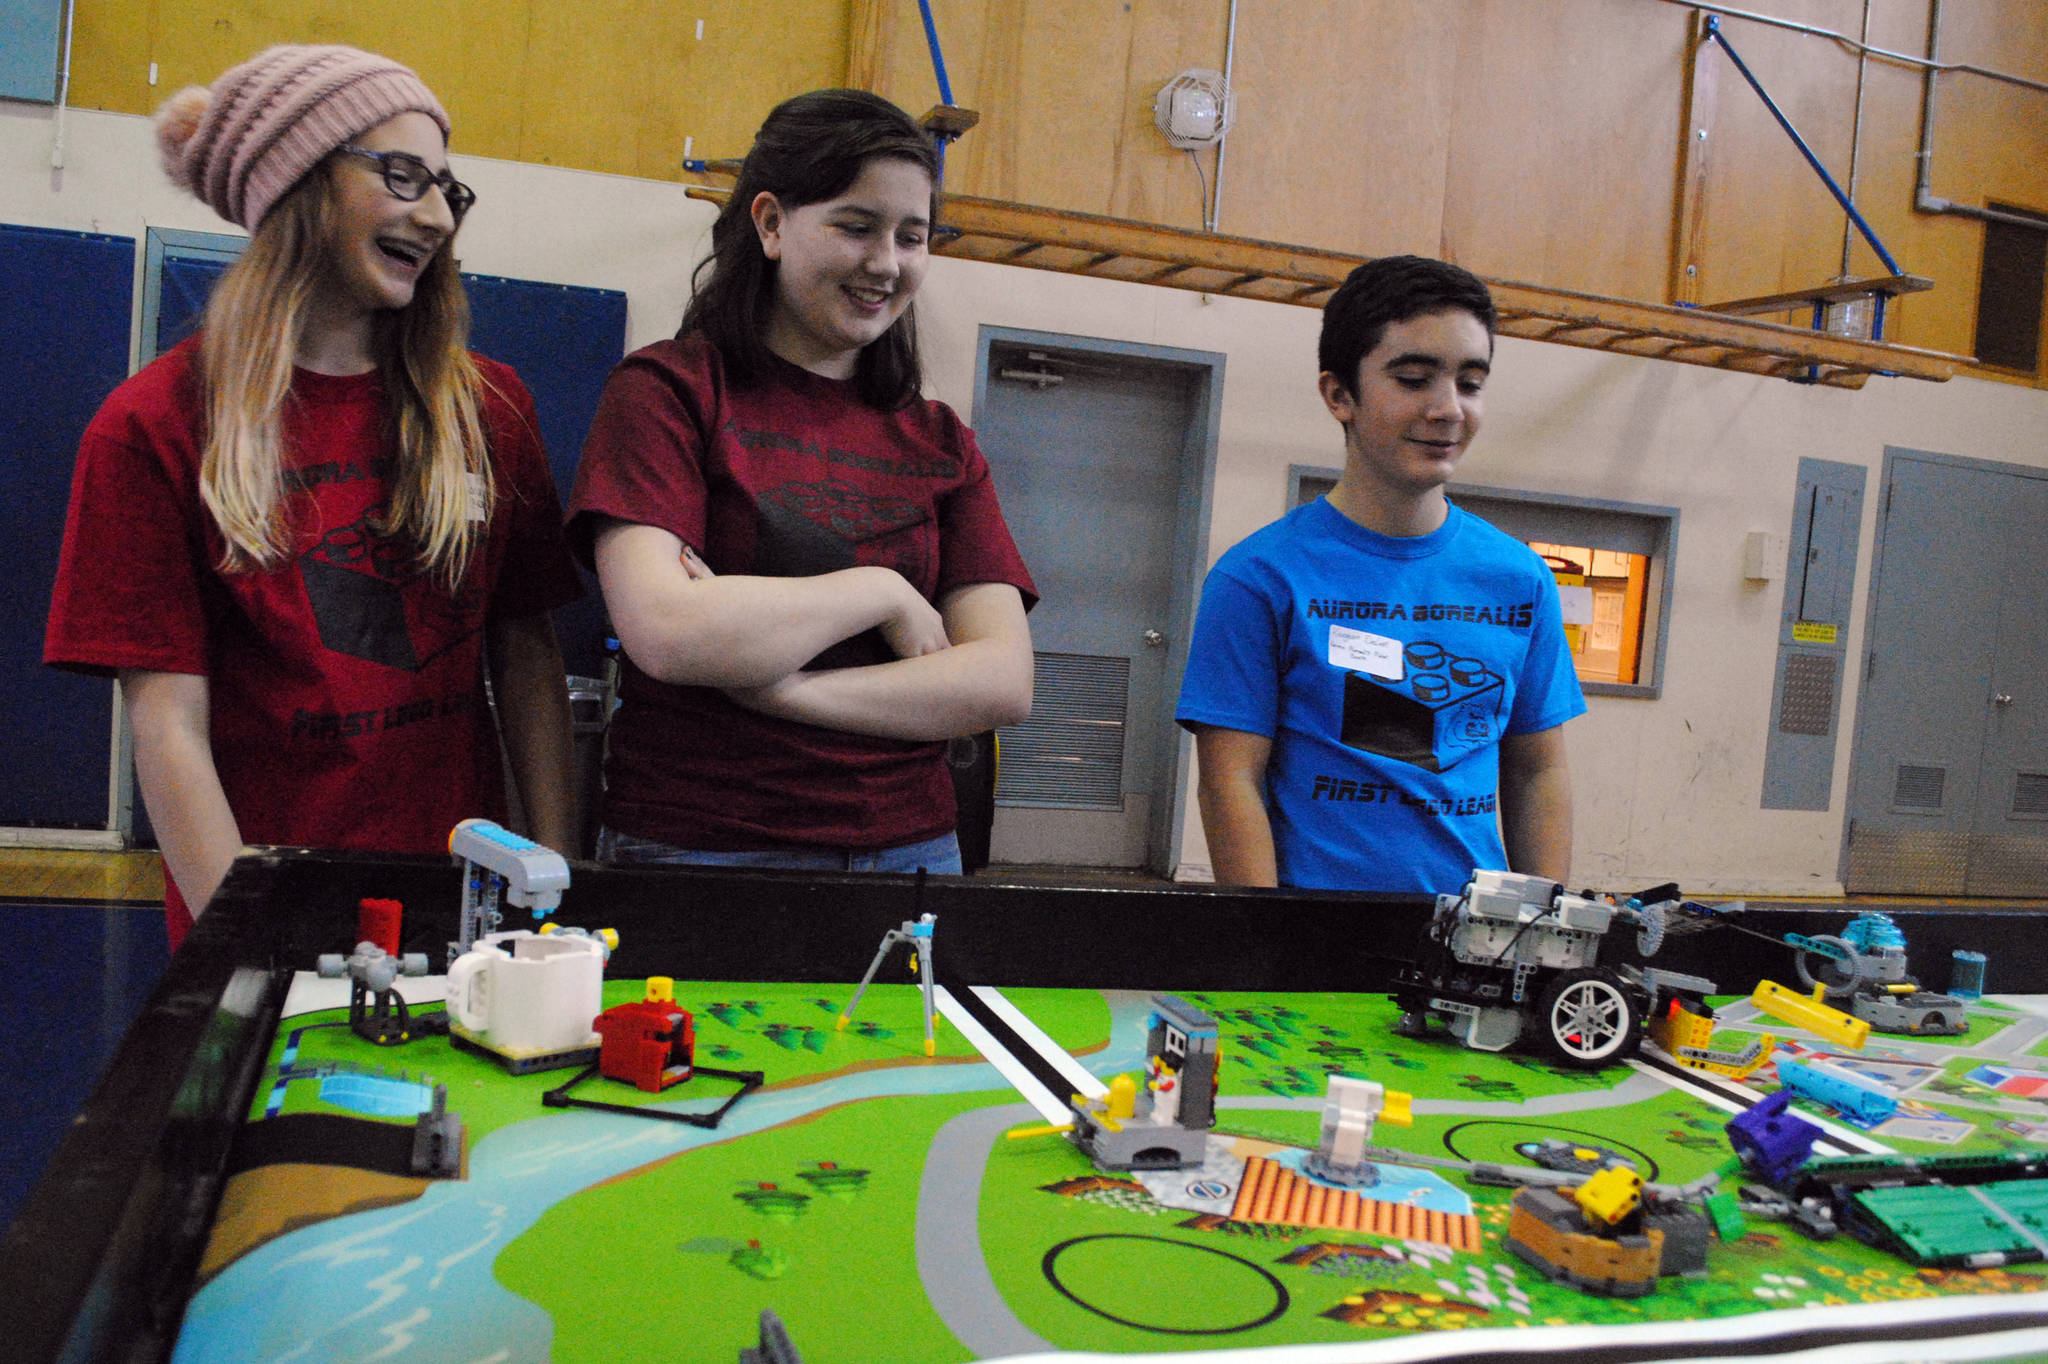 Team members from the Aurora Borealis 'Polar Bears' practice their robots programming during Saturday's First Lego League at Aurora Borealis Charter School. The competition challenges students to solve an issue with legos, teamwork and some engineering. The team went home with the Champion's Award and will continue on to the state competition in Anchorage. (Photo by Kat Sorensen/Peninsula Clarion)